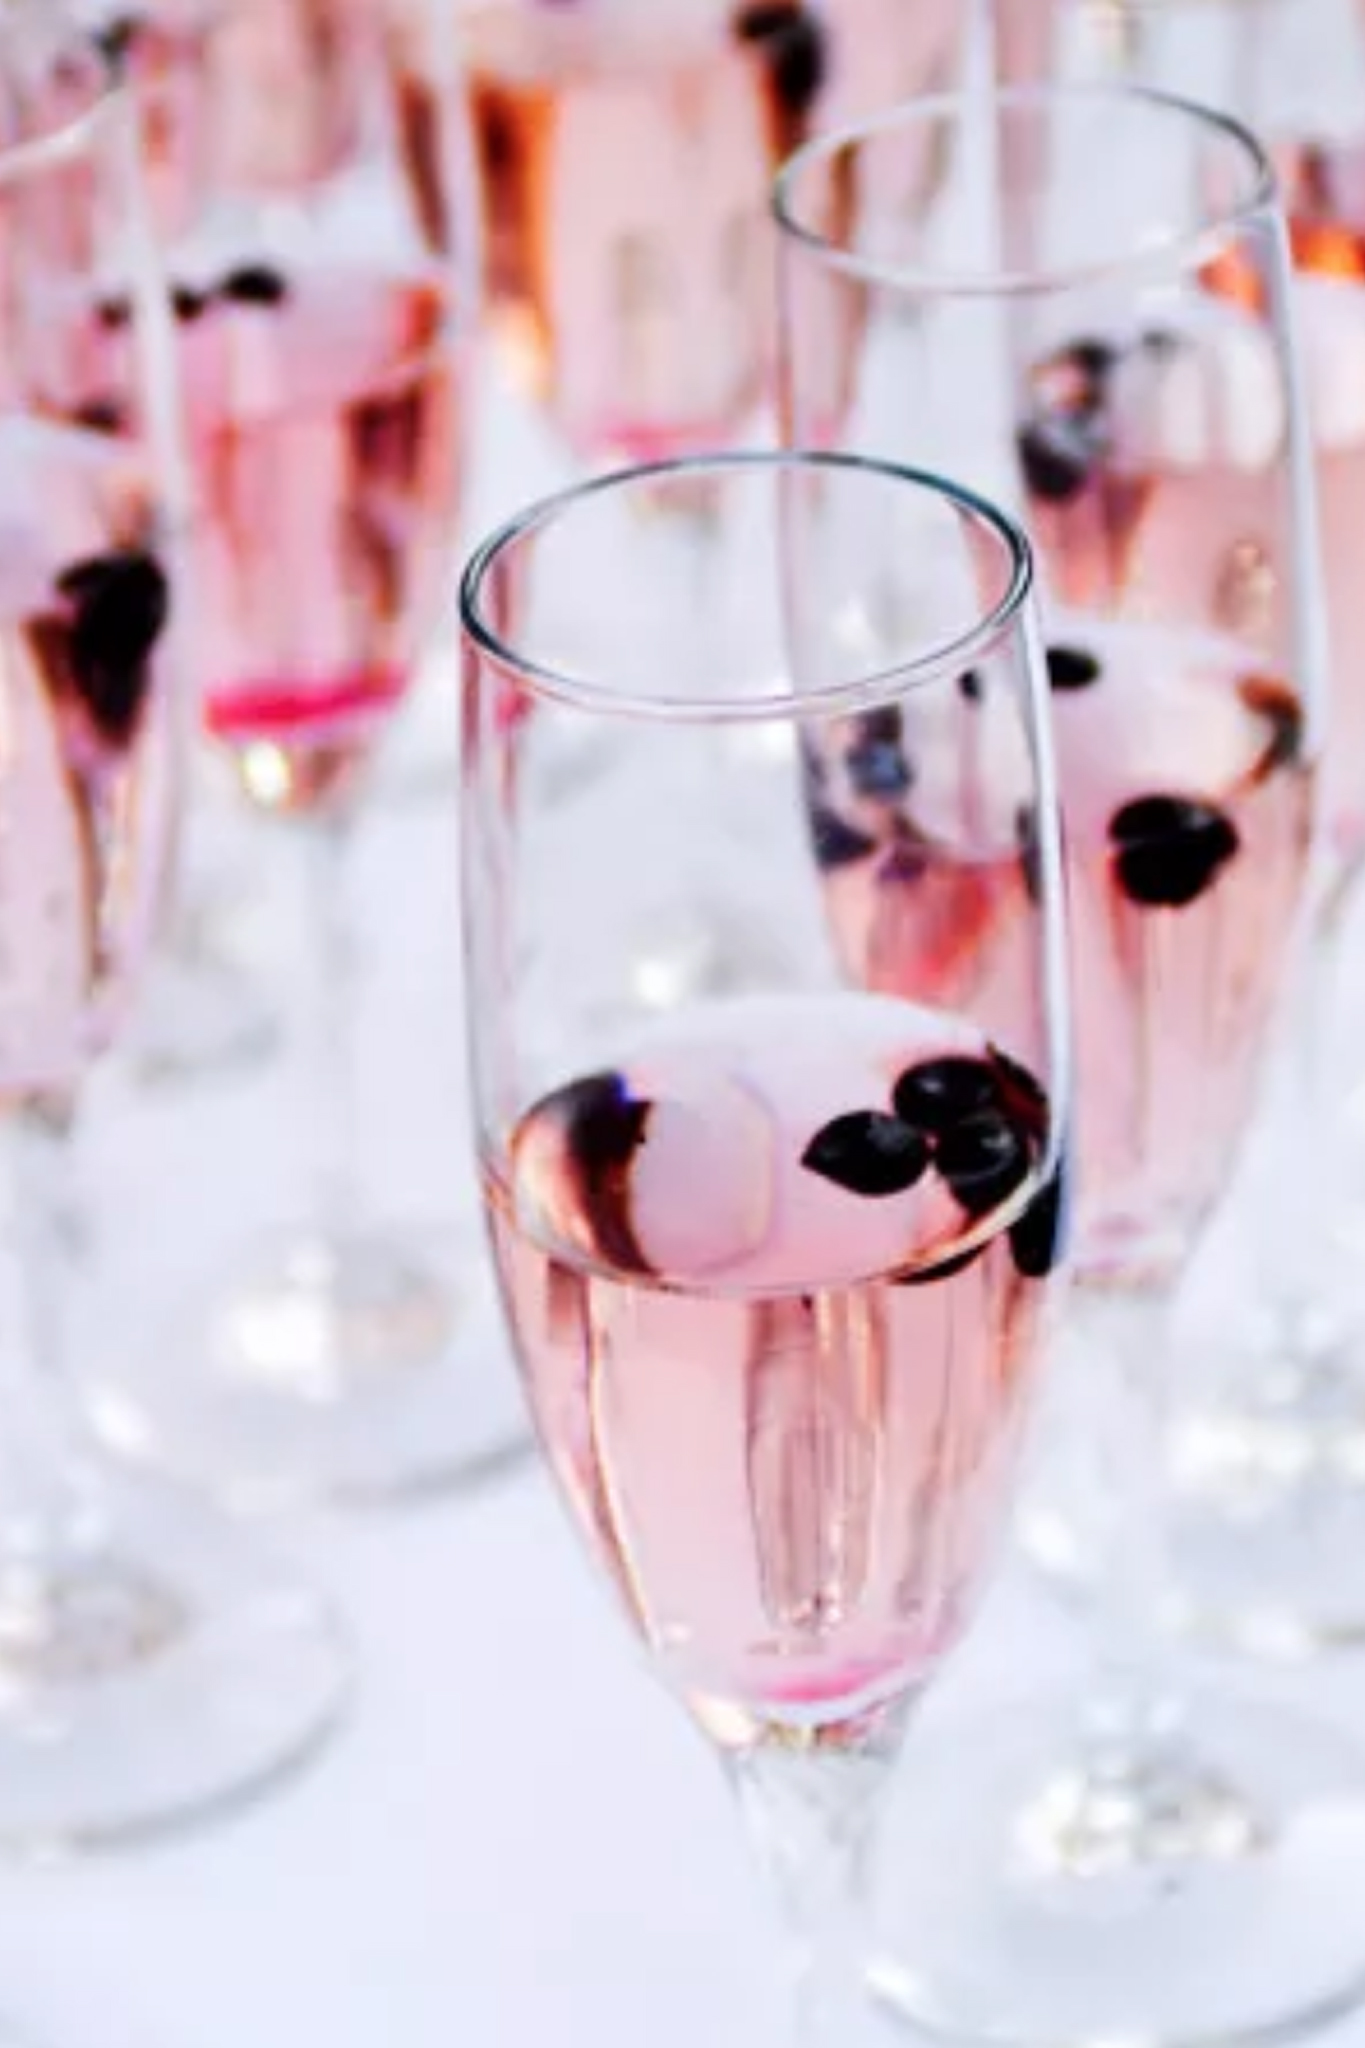 Champagne glasses in a row filled with pink champagne and berries.